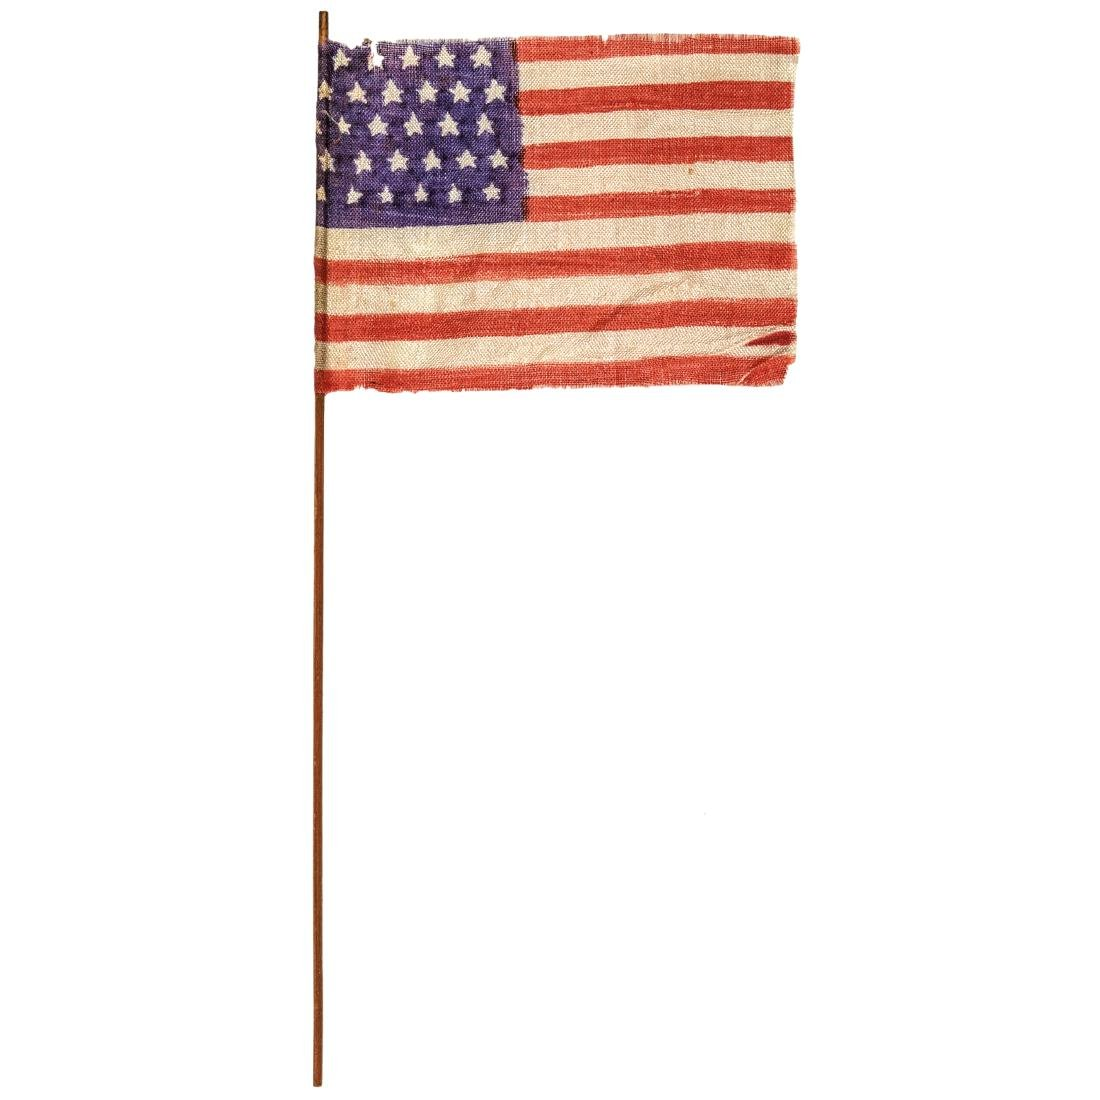 c. 1848 30-Star Printed Silk American Parade Flag